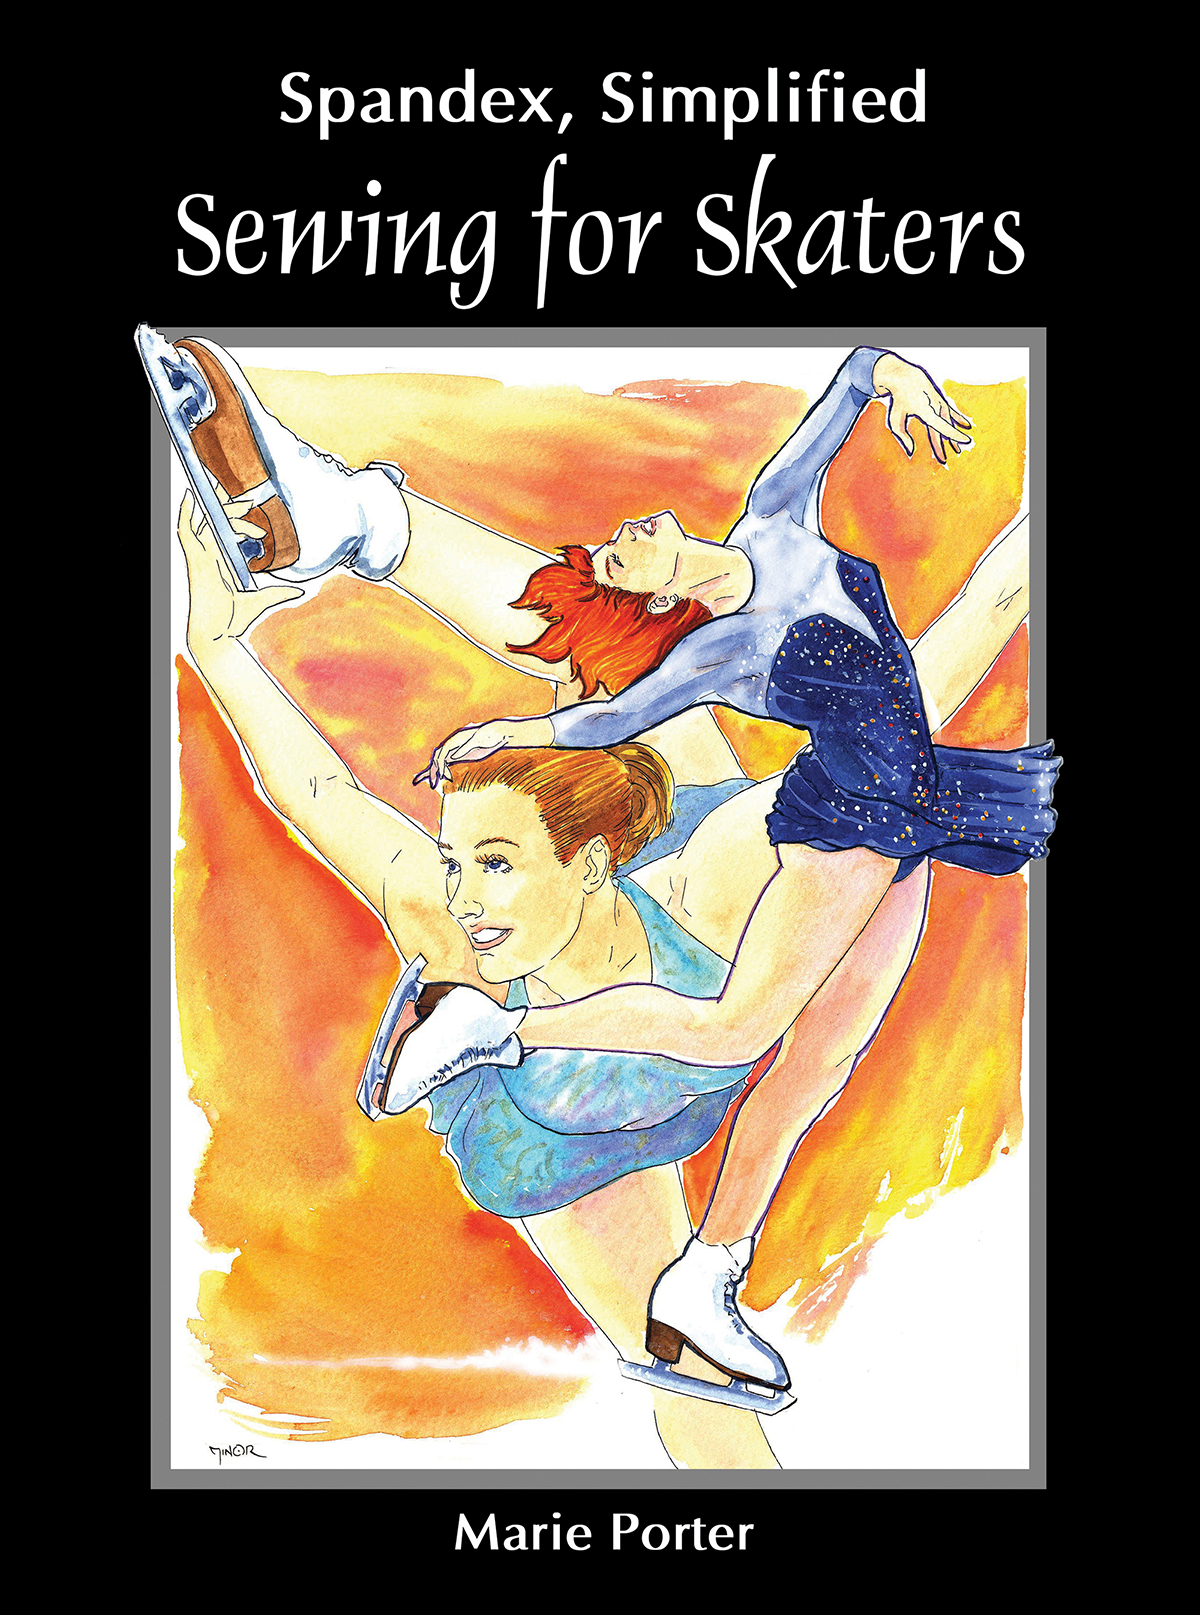 The cover image for Sewing for Skaters. A watercolour painting of 2 figure skaters in action, with a black border and white lettering.